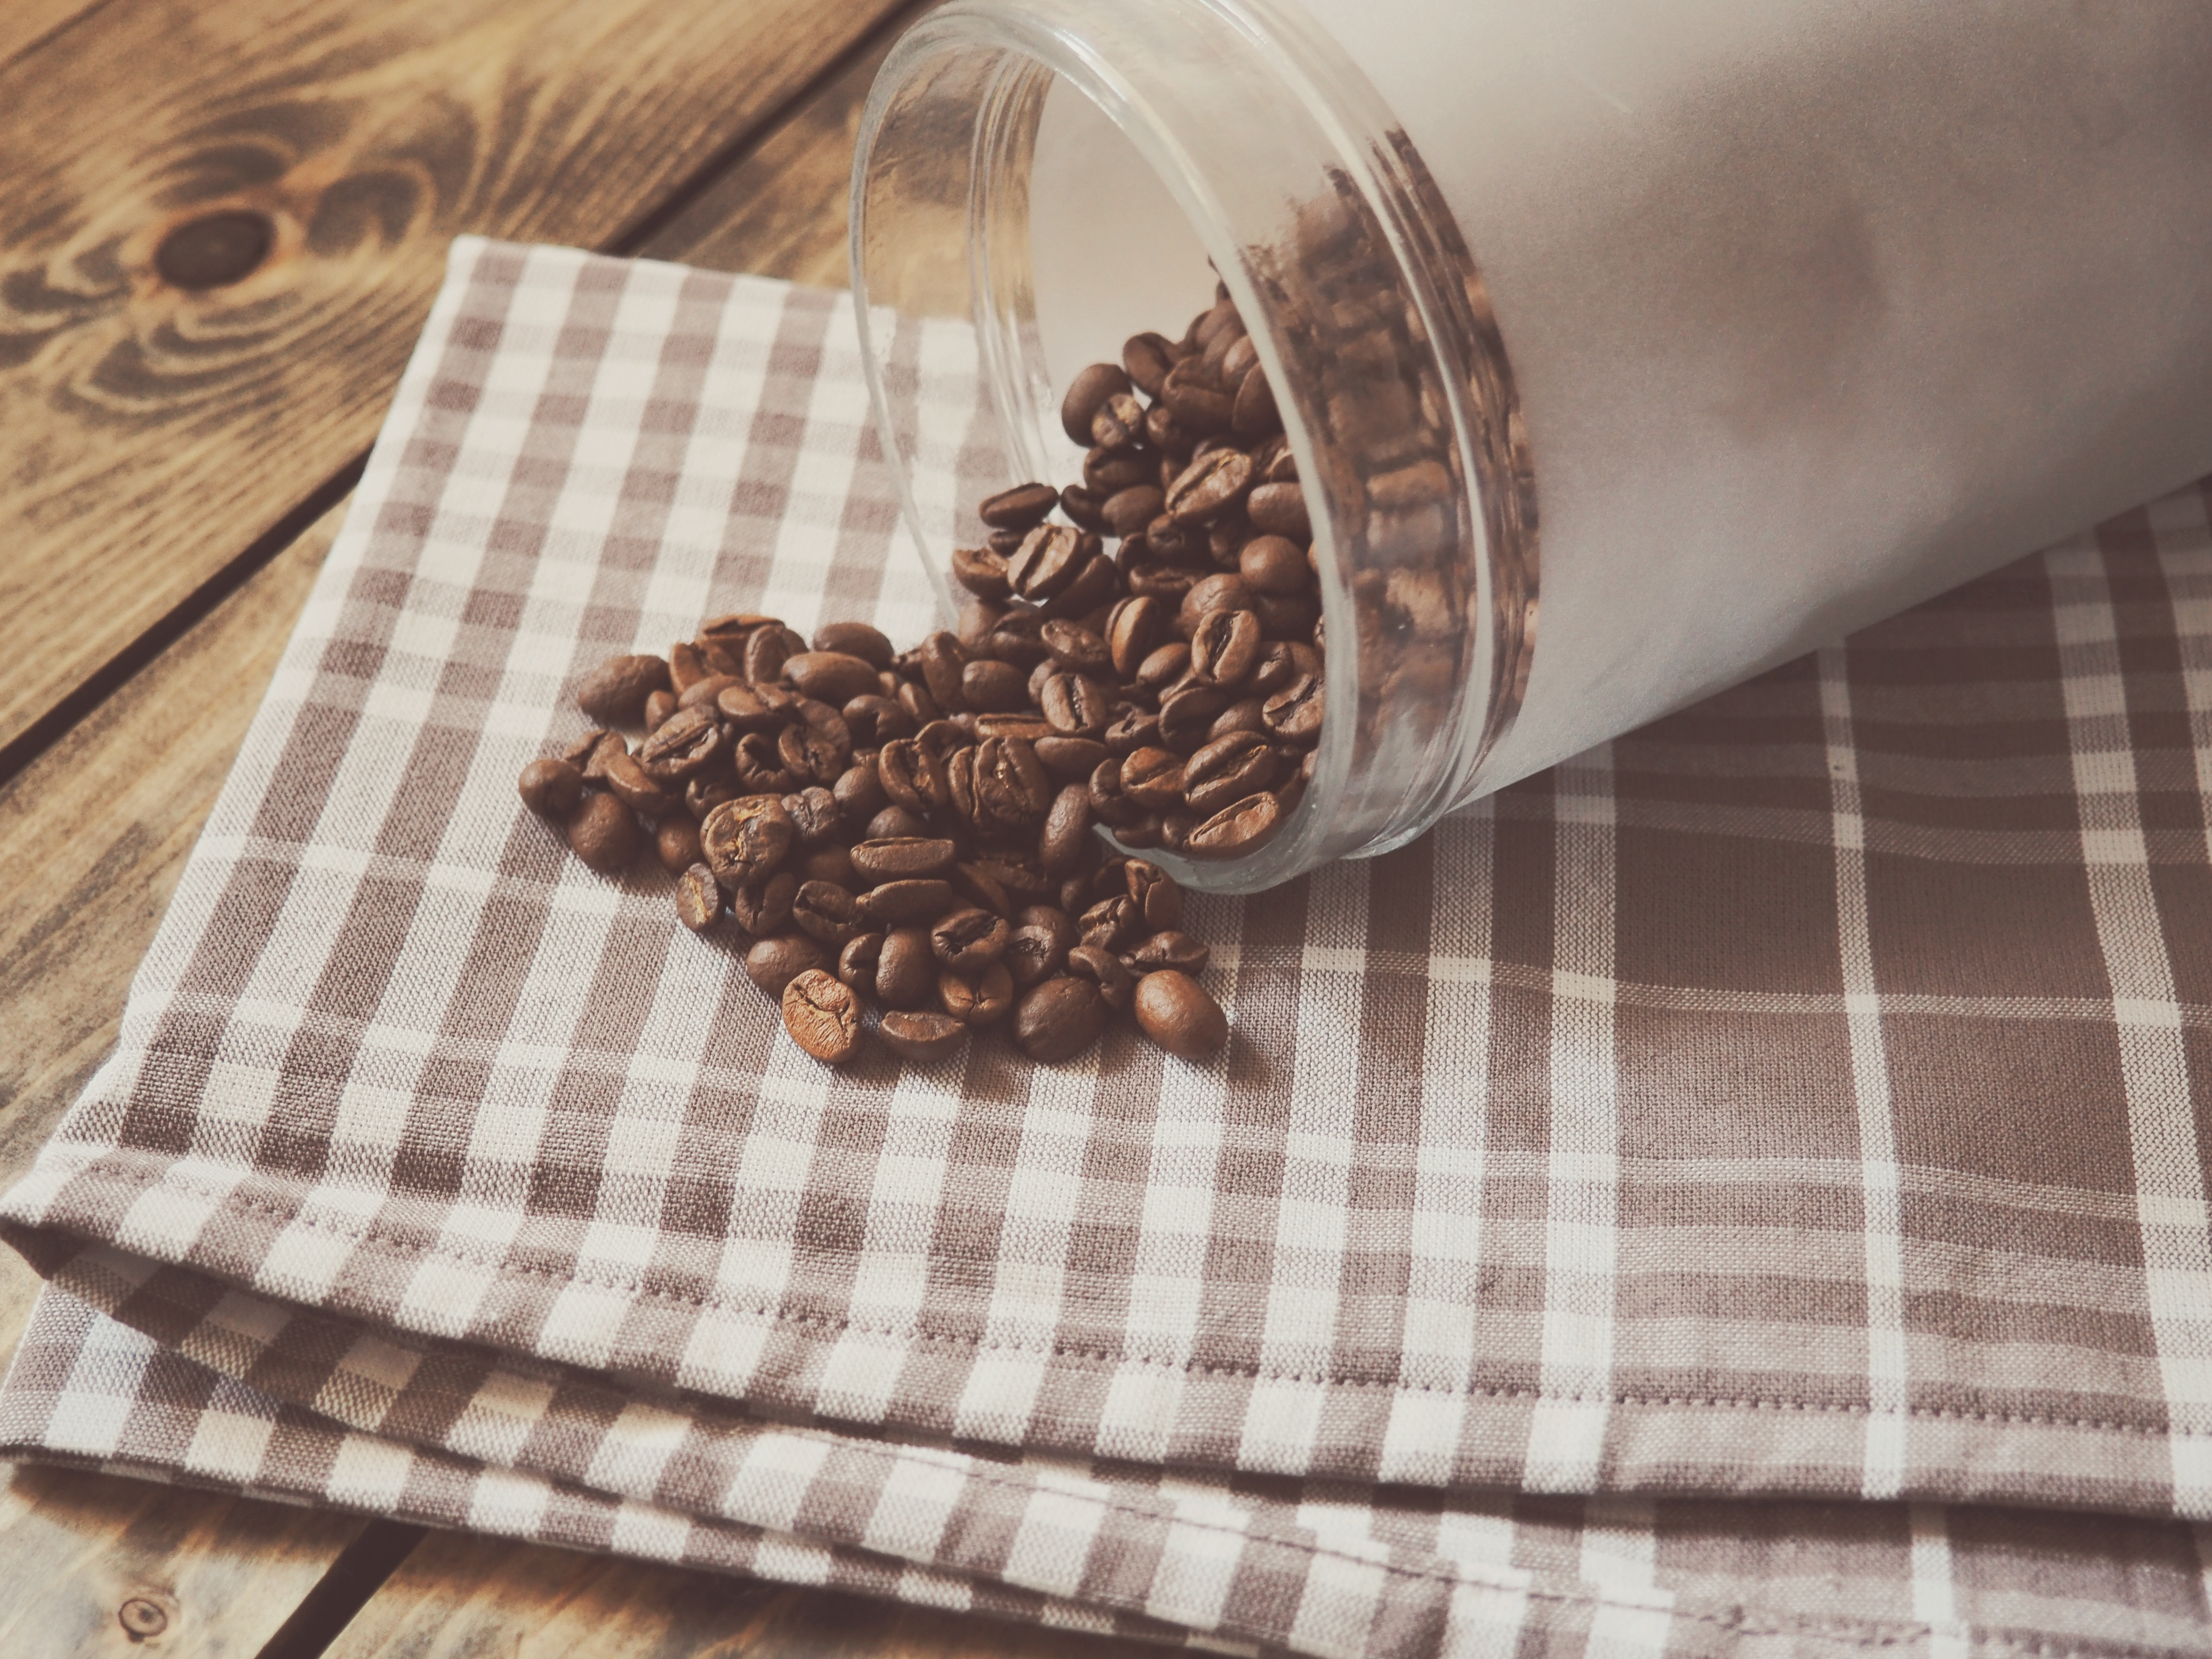 Coffee beans pour out of a white cup onto a checked cloth on a wooden floor.